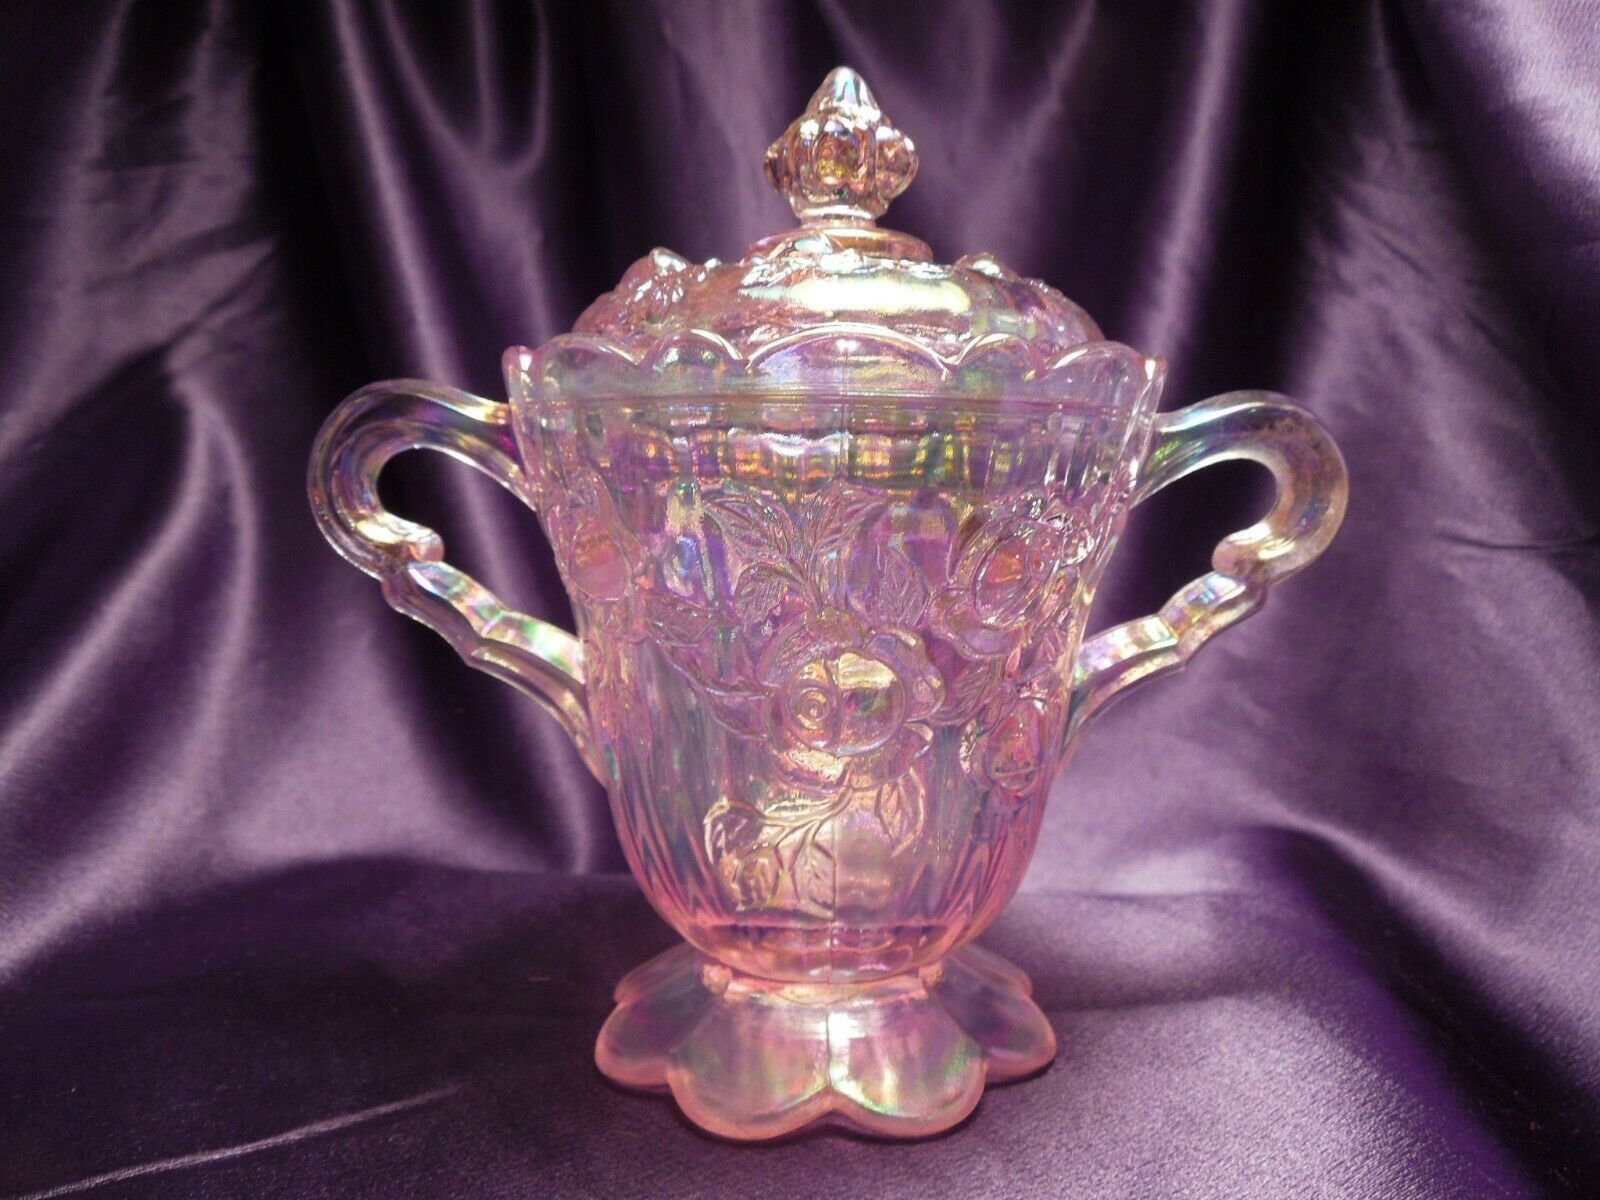 Primary image for Fenton Iridescent Pink Lidded Sugar Bowl Rose Detailed Glass Art